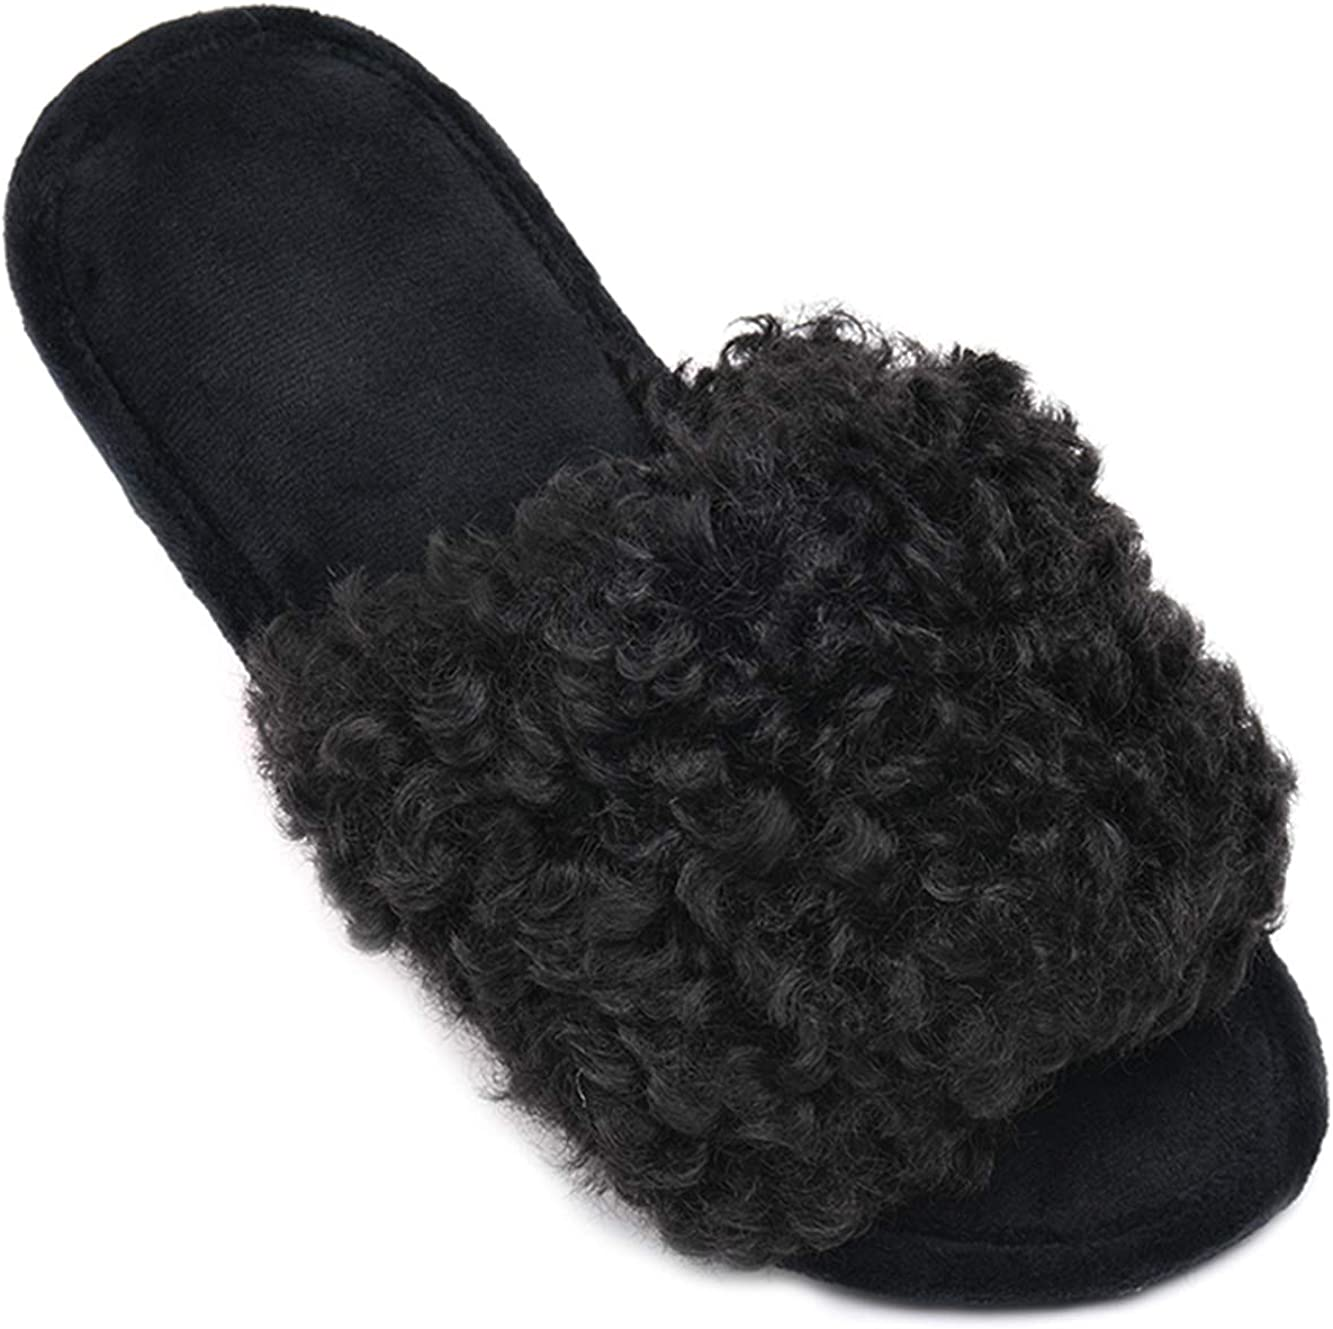 DL Womens Open Toe Slippers, Memory Foam House Slippers Indoor Bedroom with Furry Fur, Cozy Non-Slip Home Shoes for Women Black Pink Grey